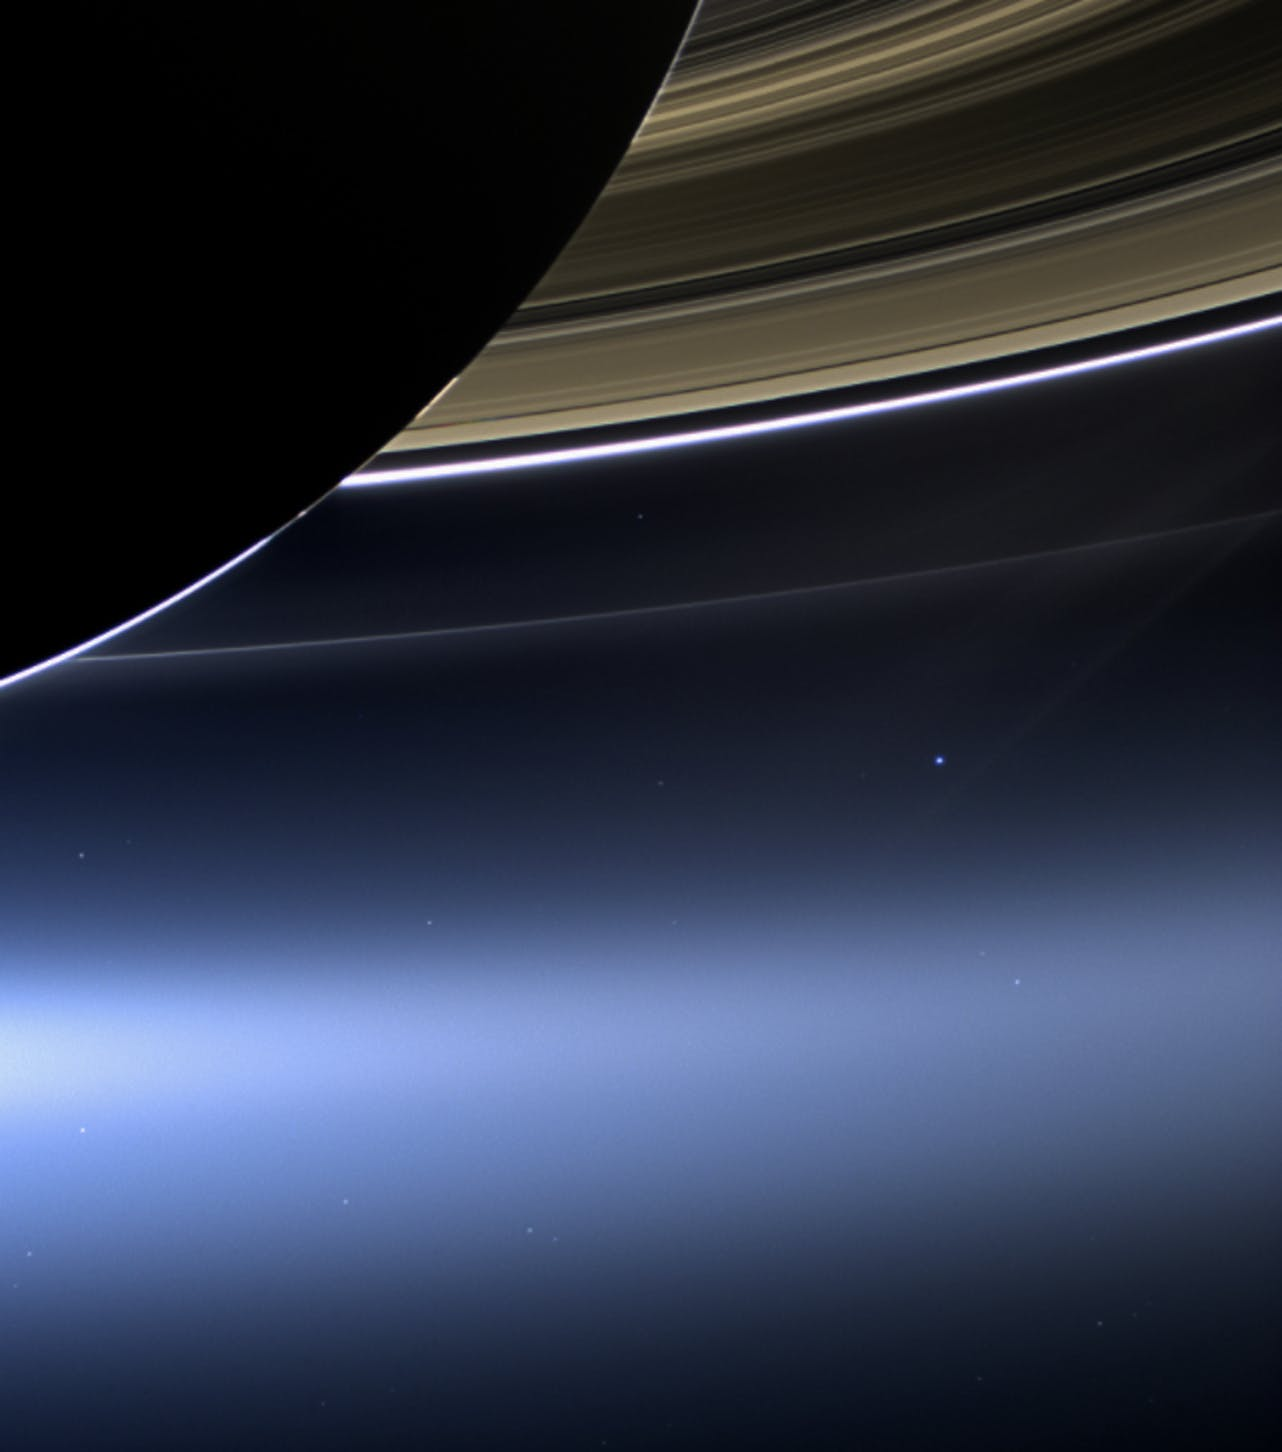 Saturn, from Cassini's perspective, along with a tiny bright dot below the rings that is Earth.